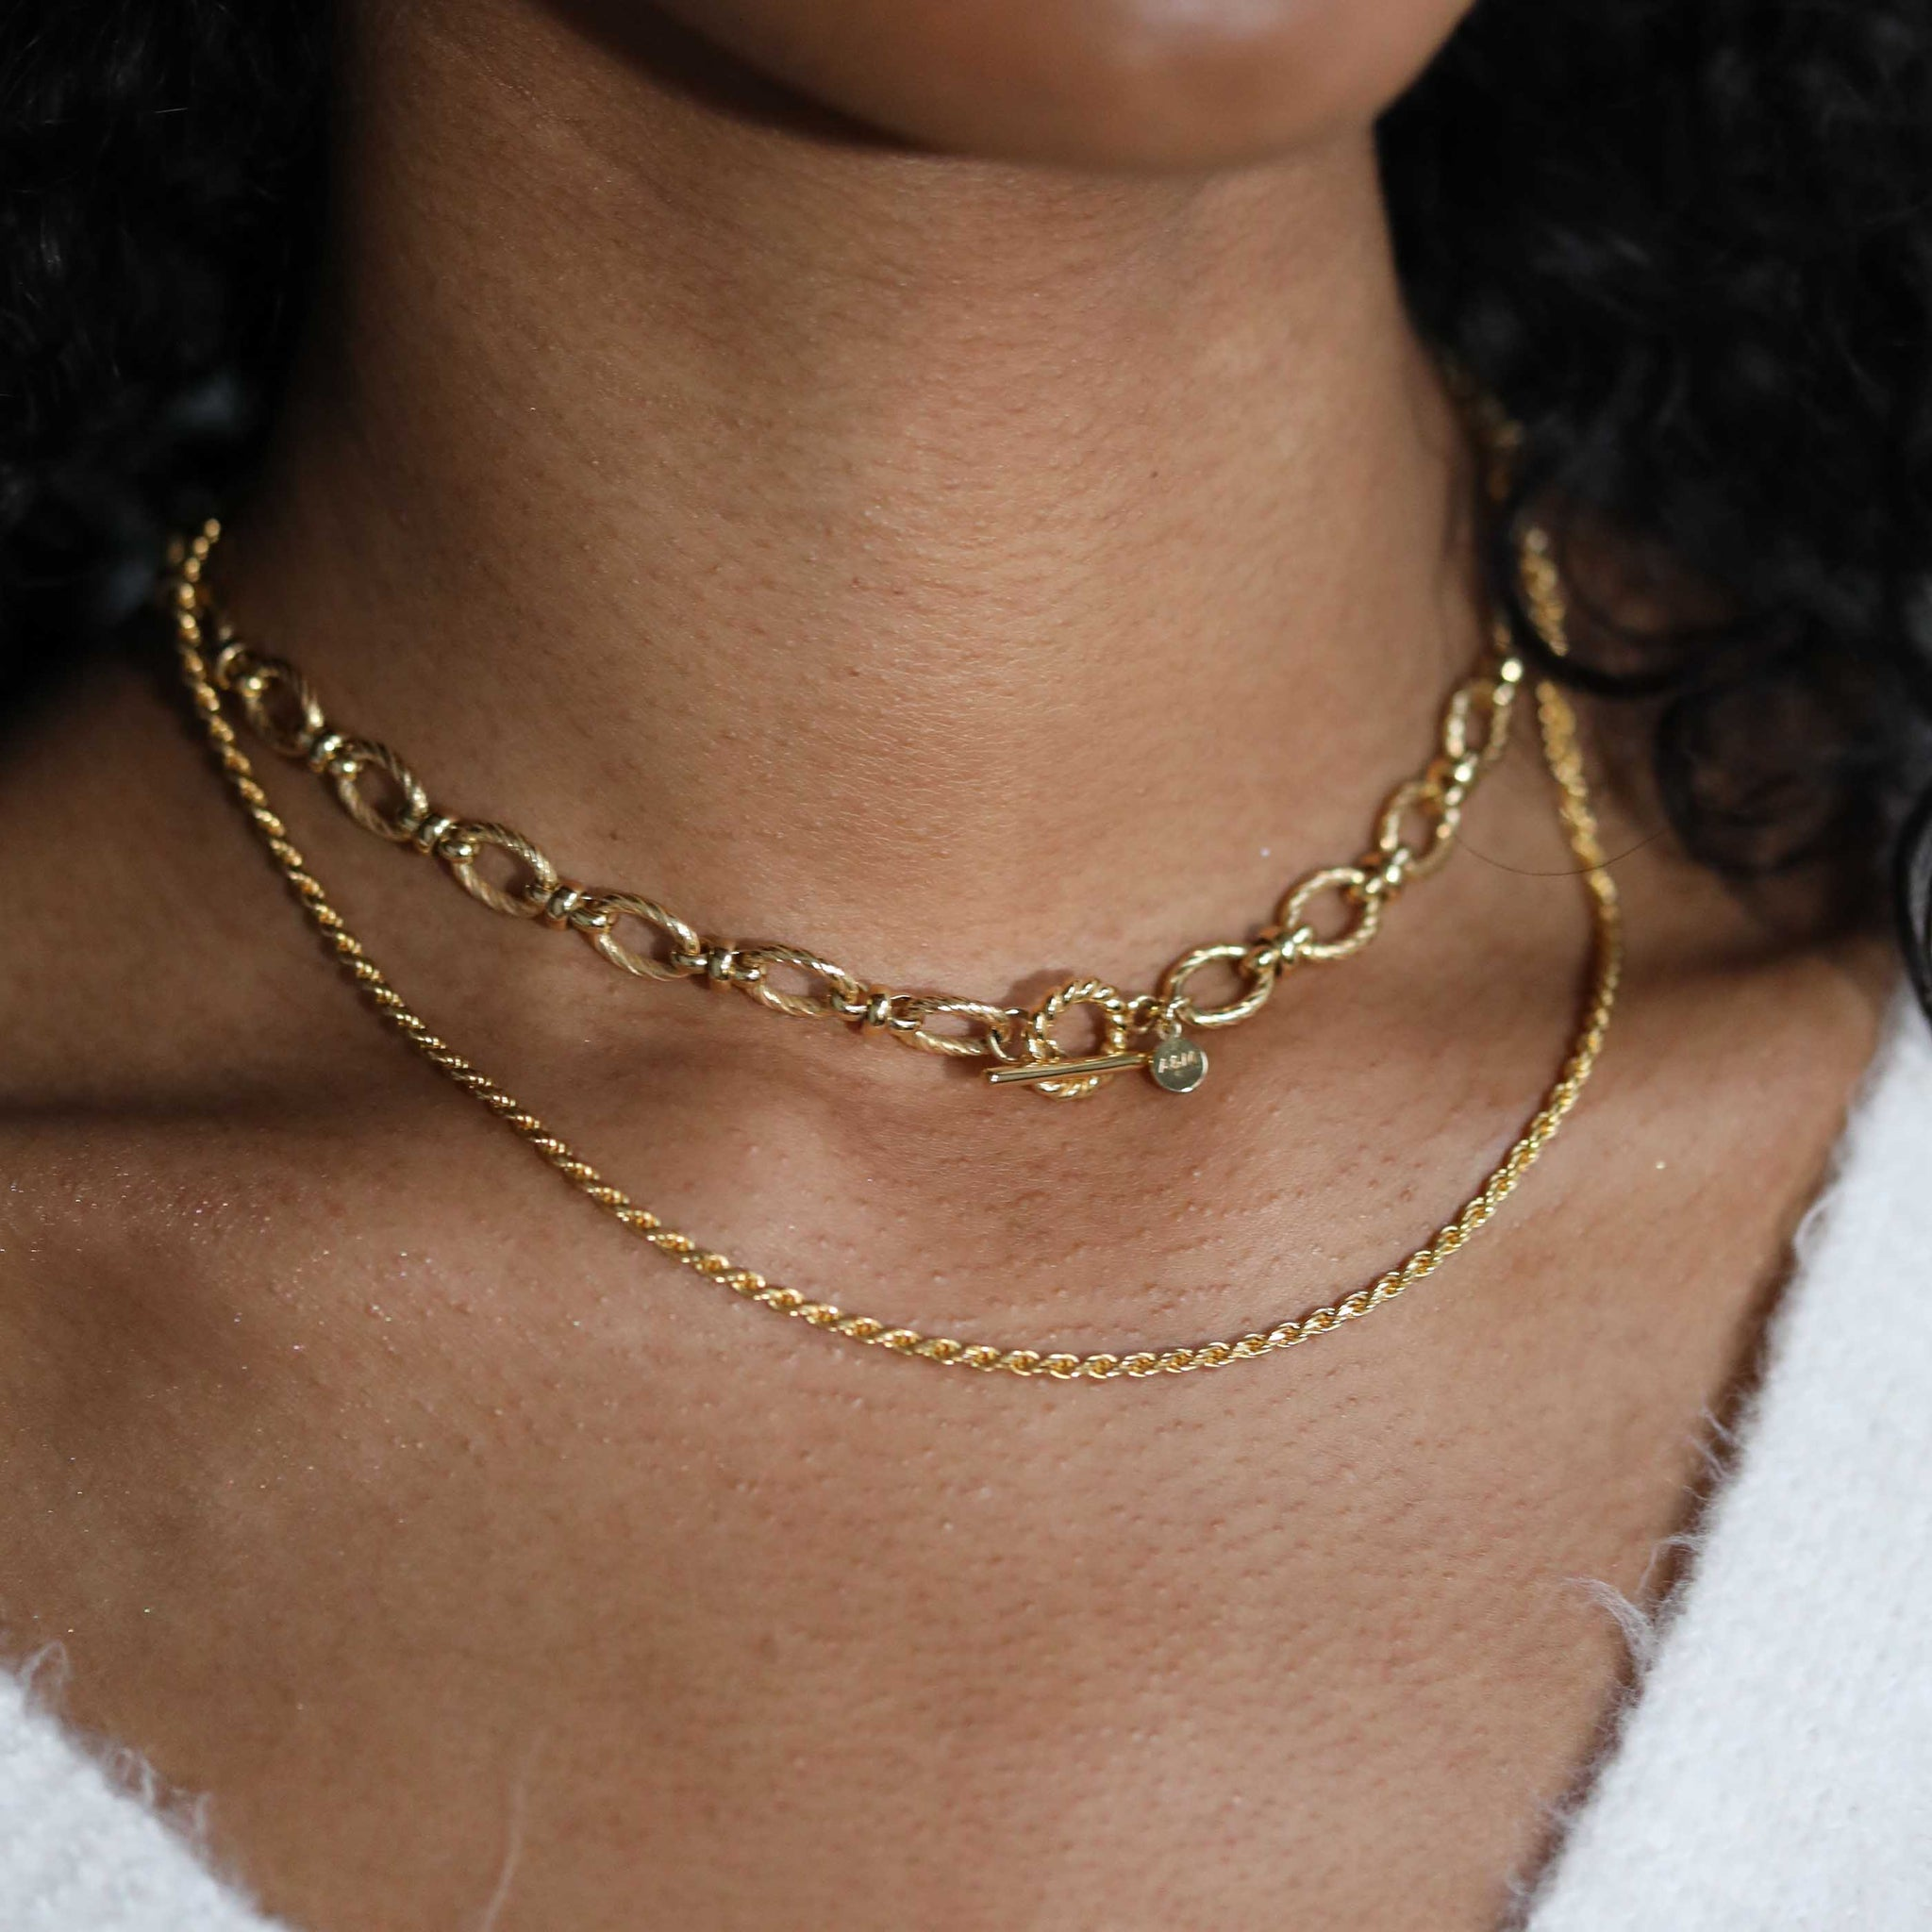 oval link t-bar necklace worn with rope chain necklace